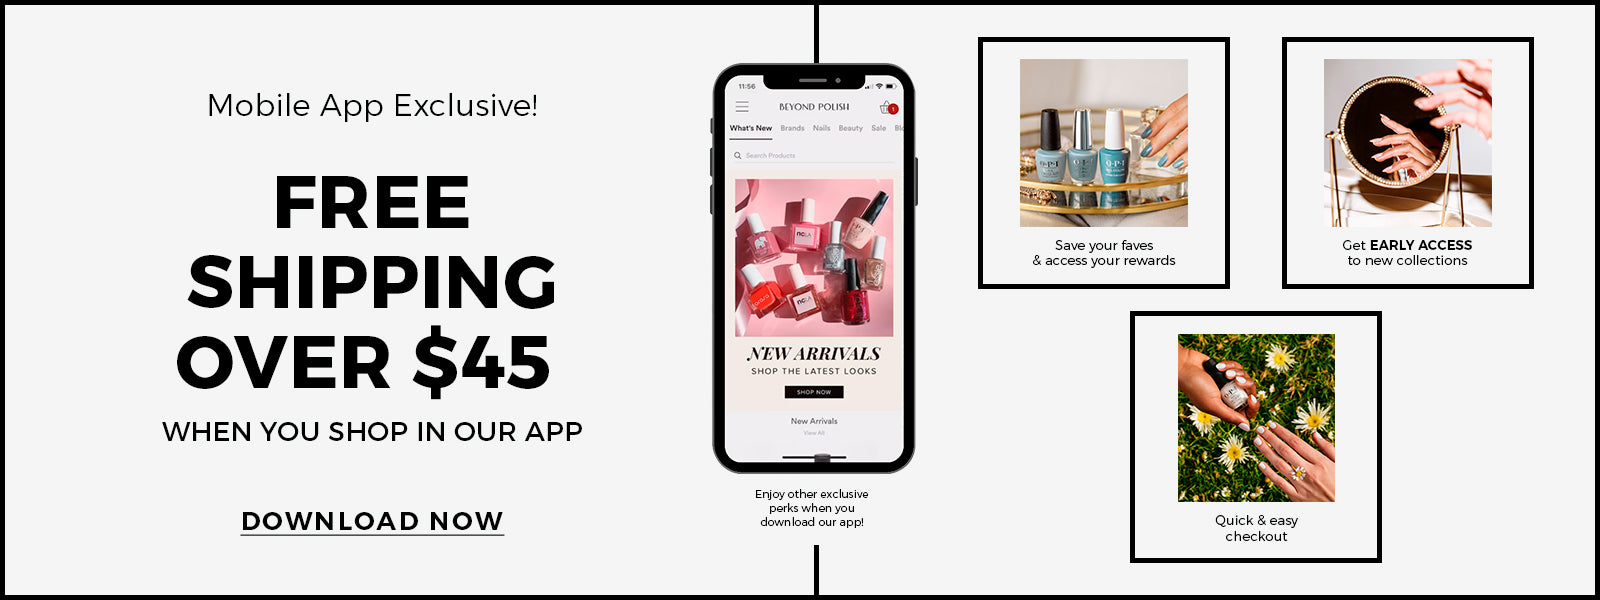 Get Free Shipping Over $45 When You Shop In Our Mobile App!